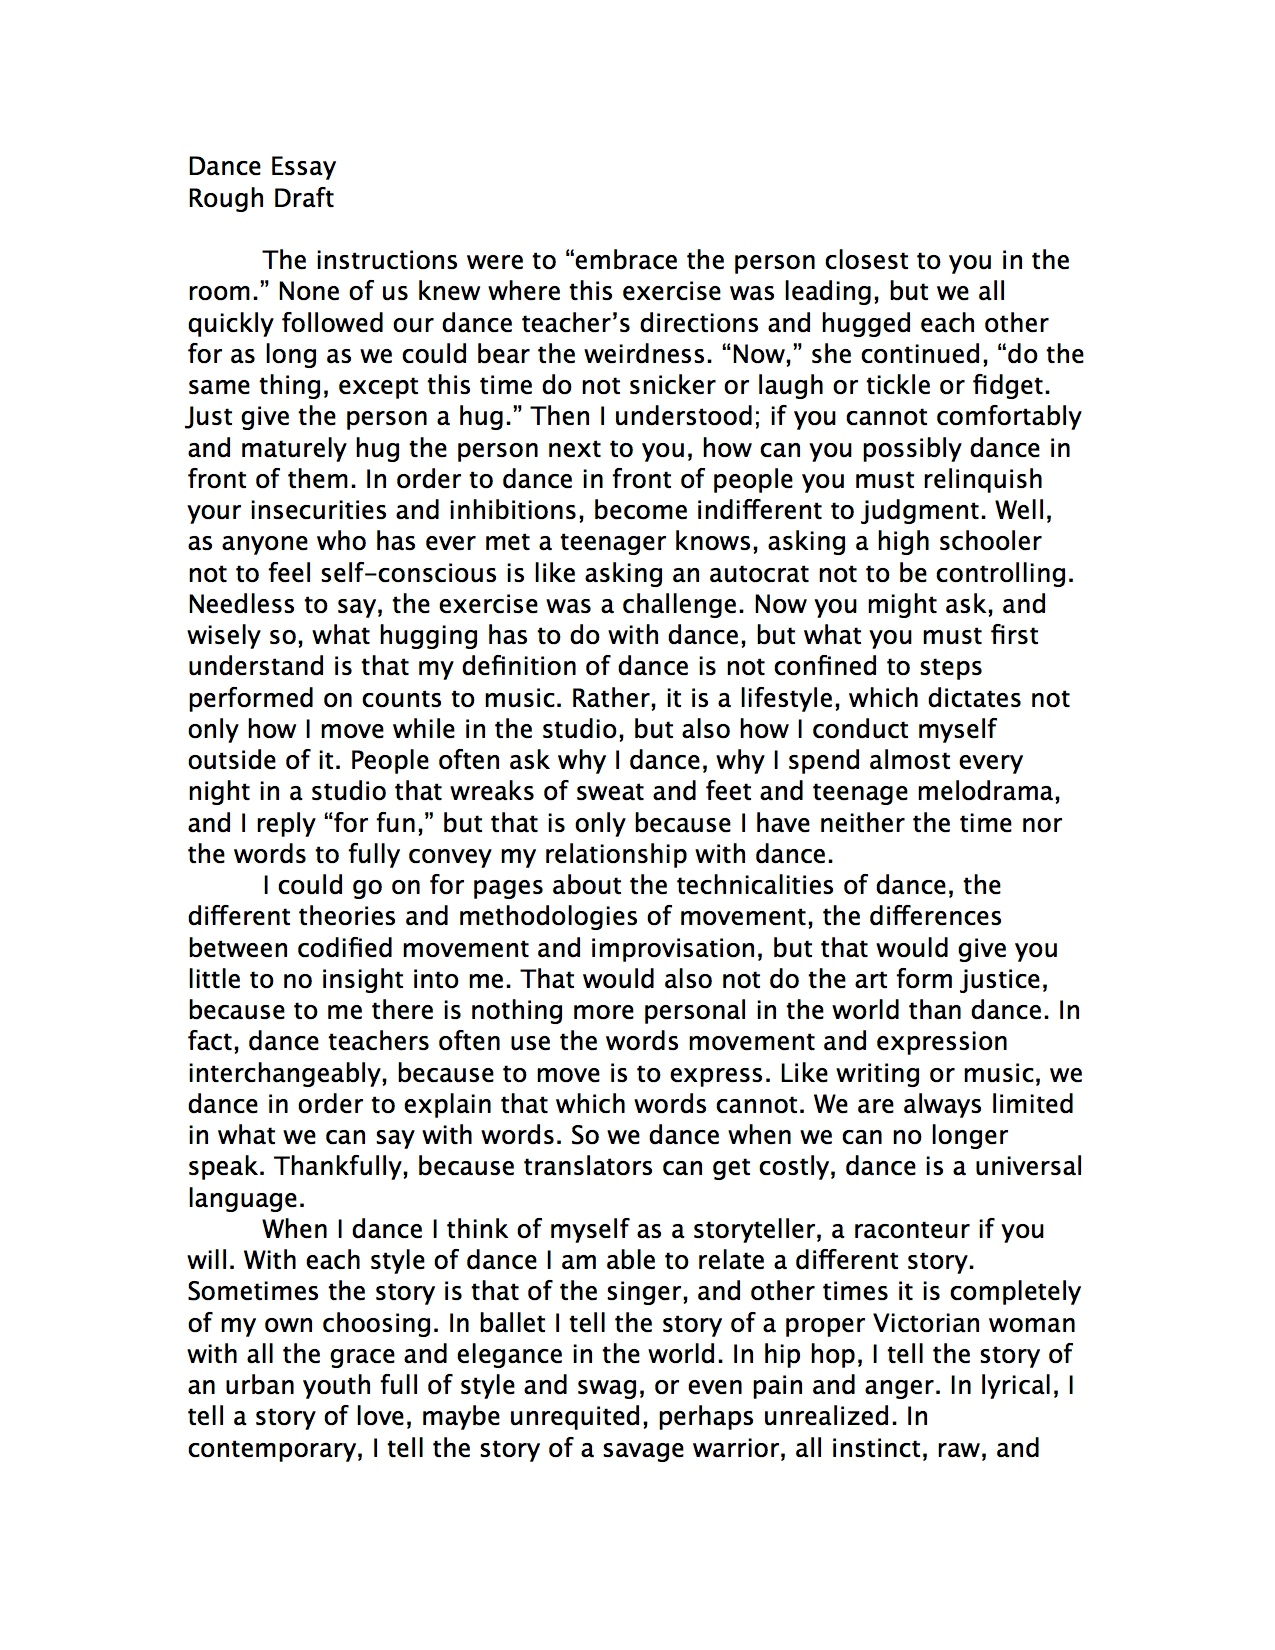 002 Essay Example How To Start Good Proposal Amazing College Essays Writing In About Failure Rebecca Nueman Dance Your Background Yourself Hook Off Examples Prompt Awesome A Paper For Introduction Biography Full